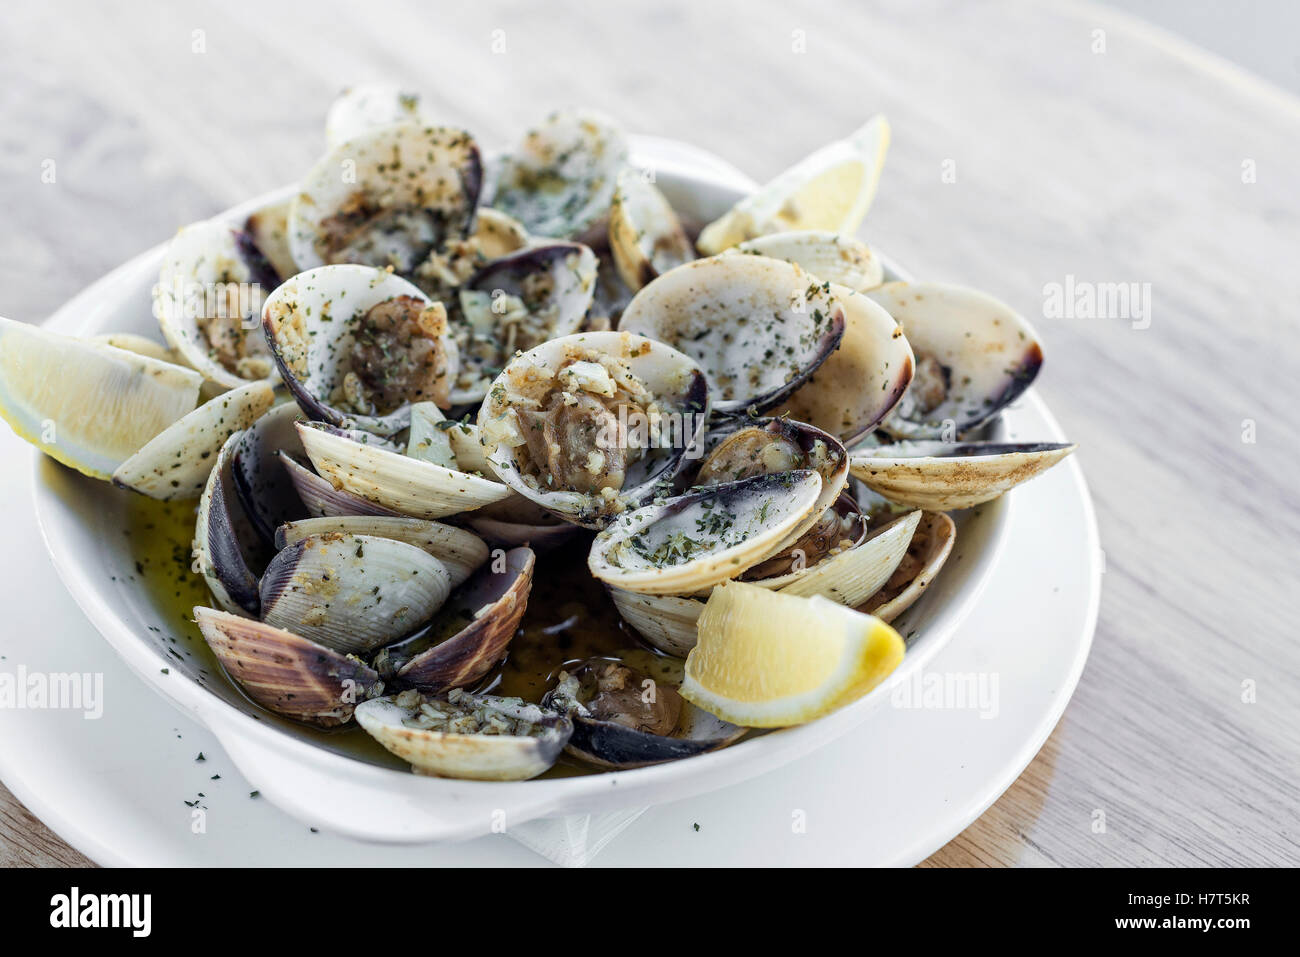 garlic white wine steamed fresh clams seafood tapas simple snack ameijoas bulhao pato portuguese style - Stock Image